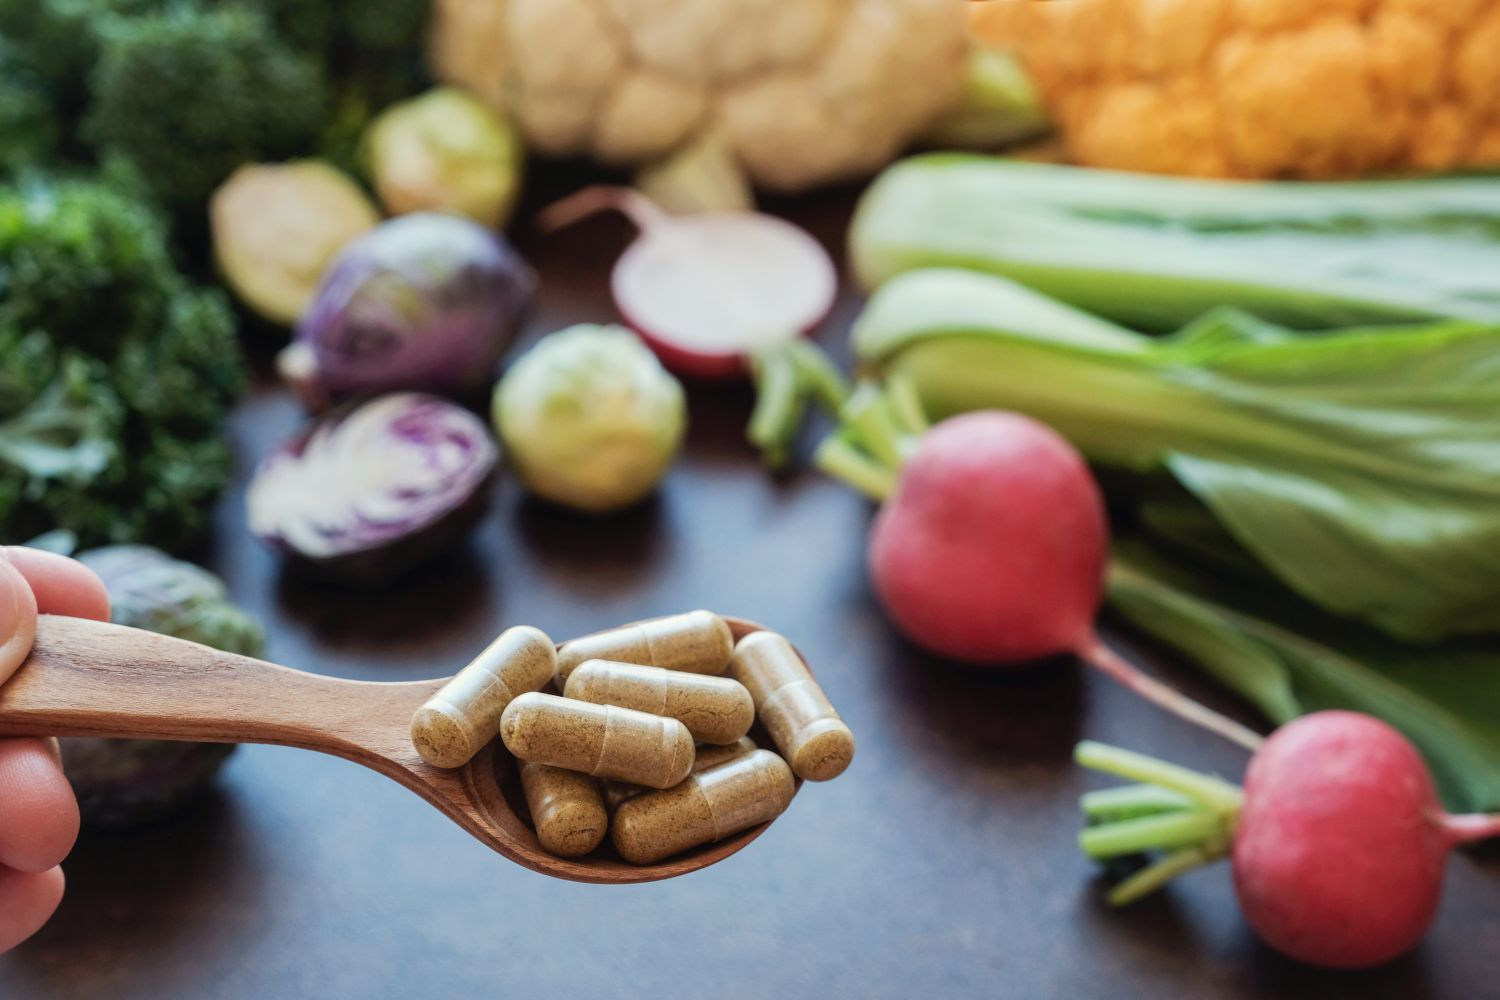 The Top 10 Supplements Most People Should Take